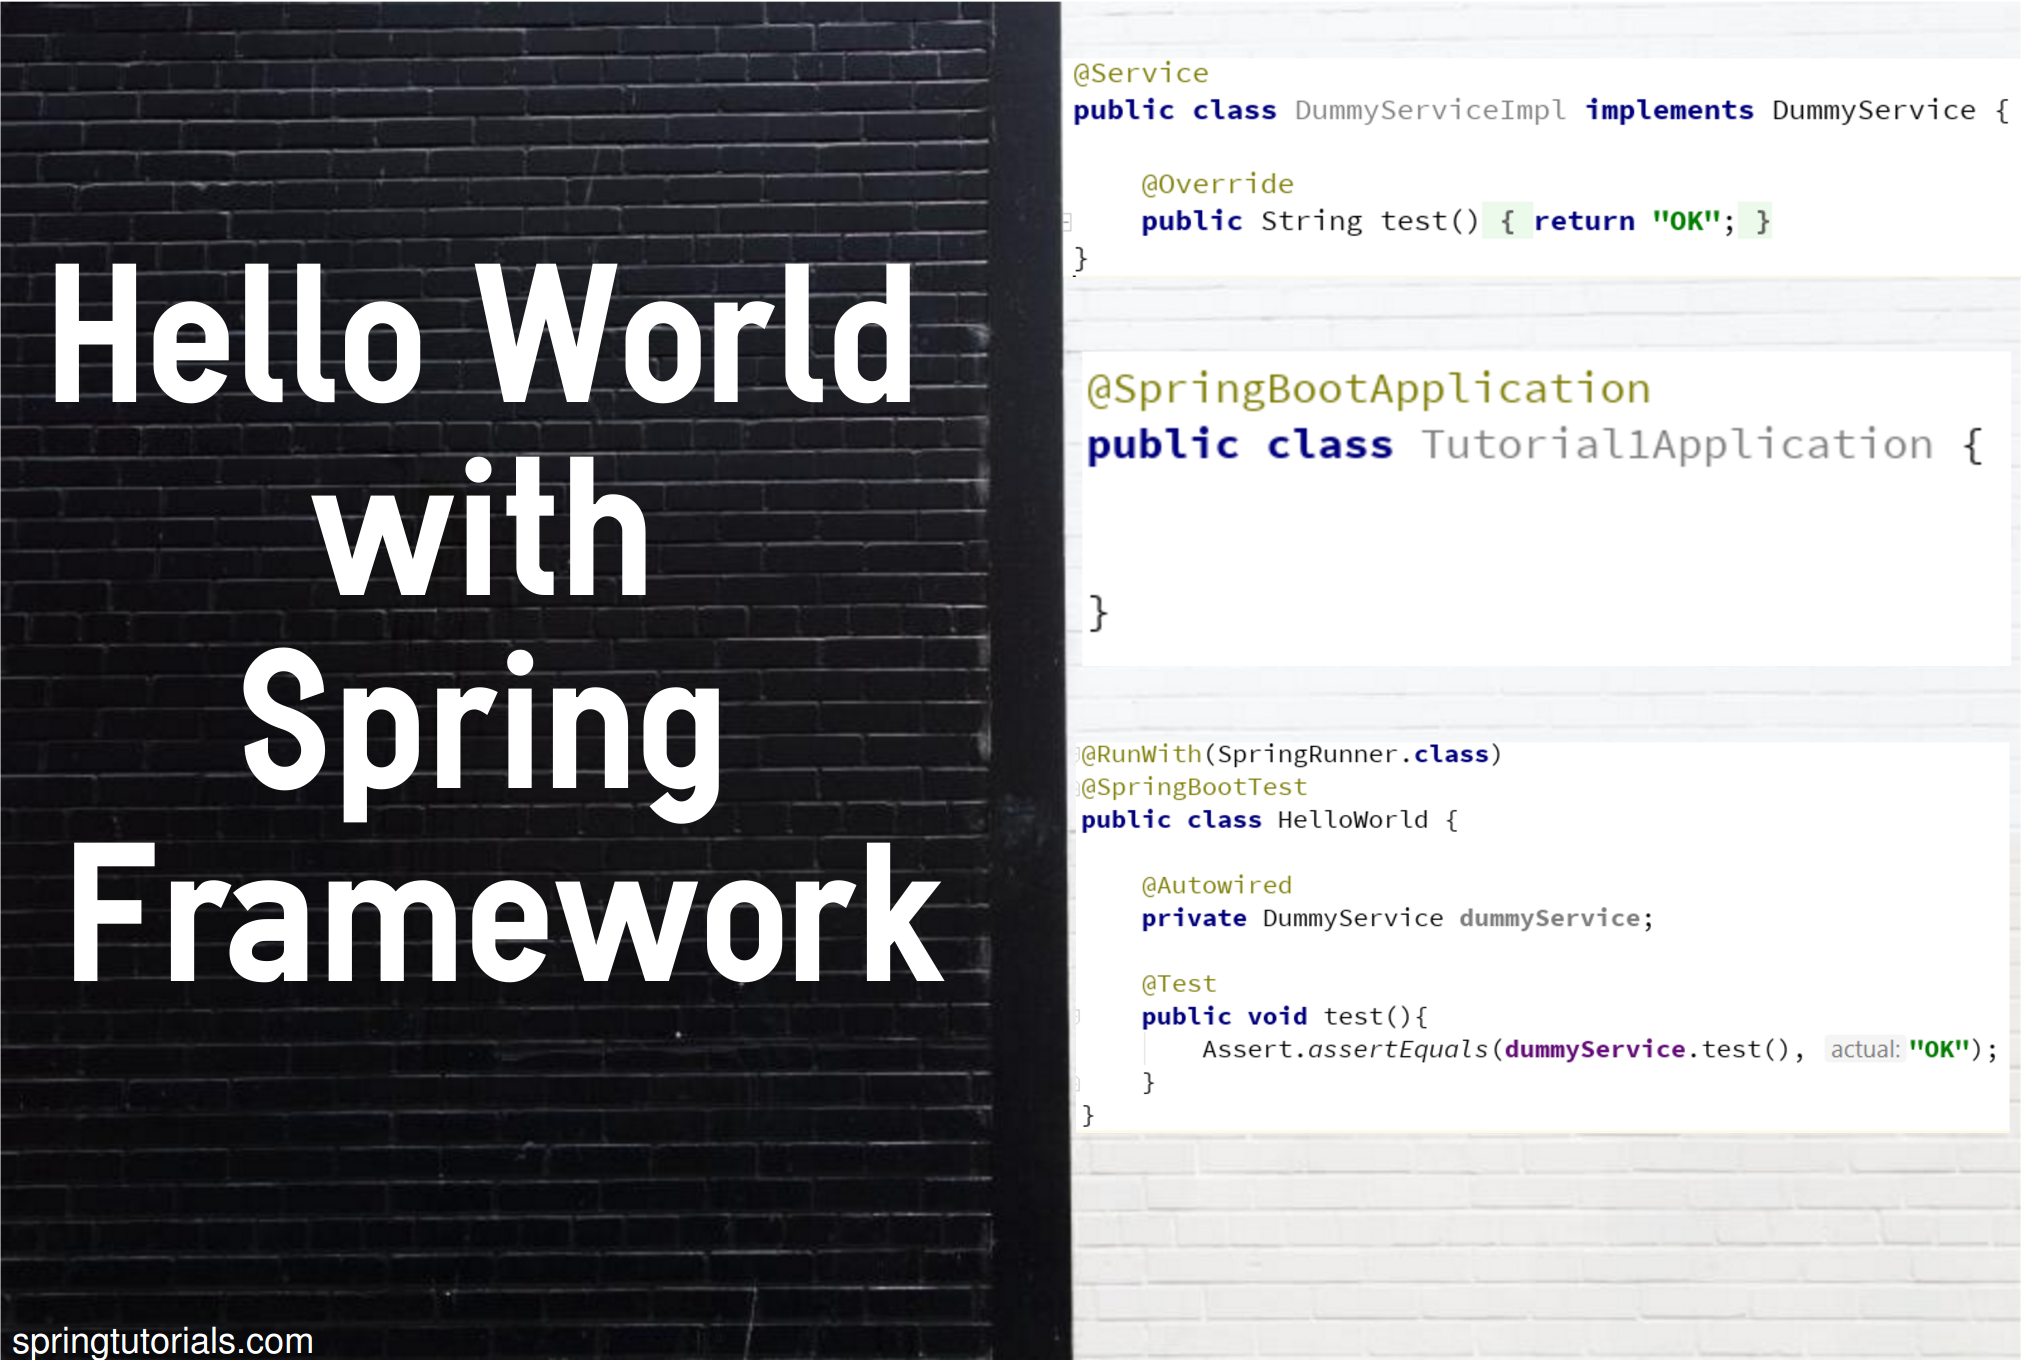 Hello World with Spring Framework